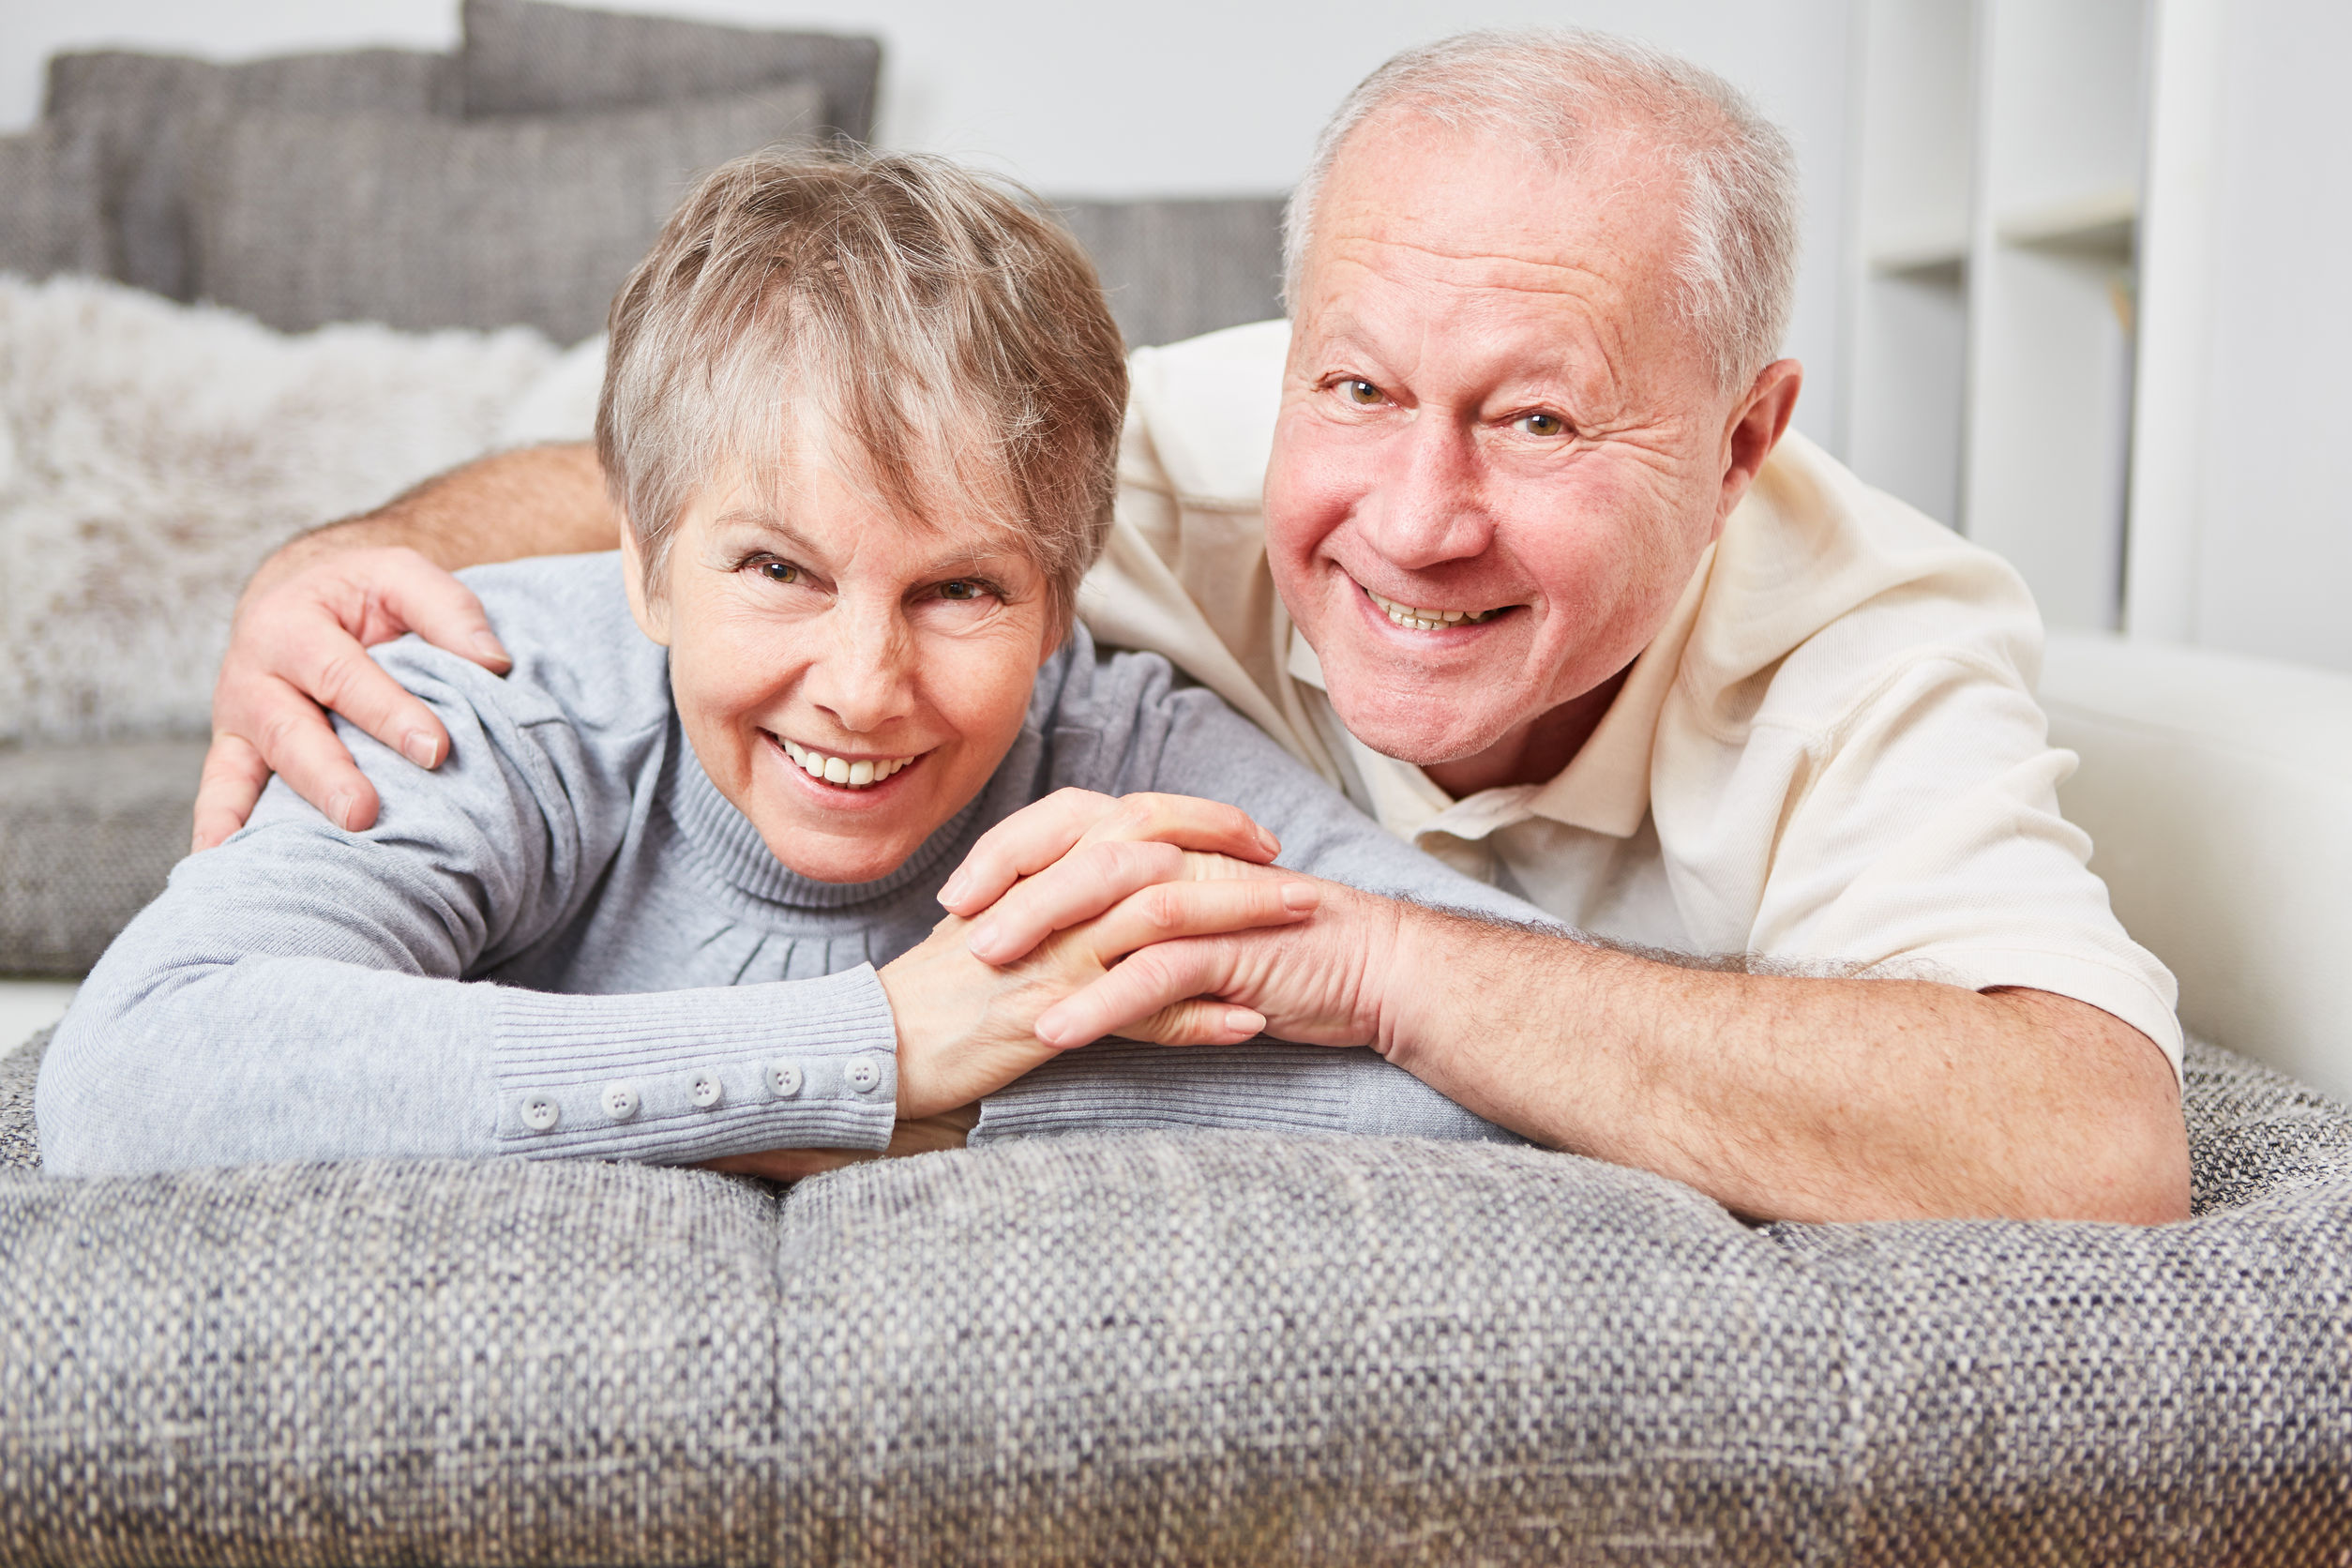 Seniors Contracting STDs at Record Levels